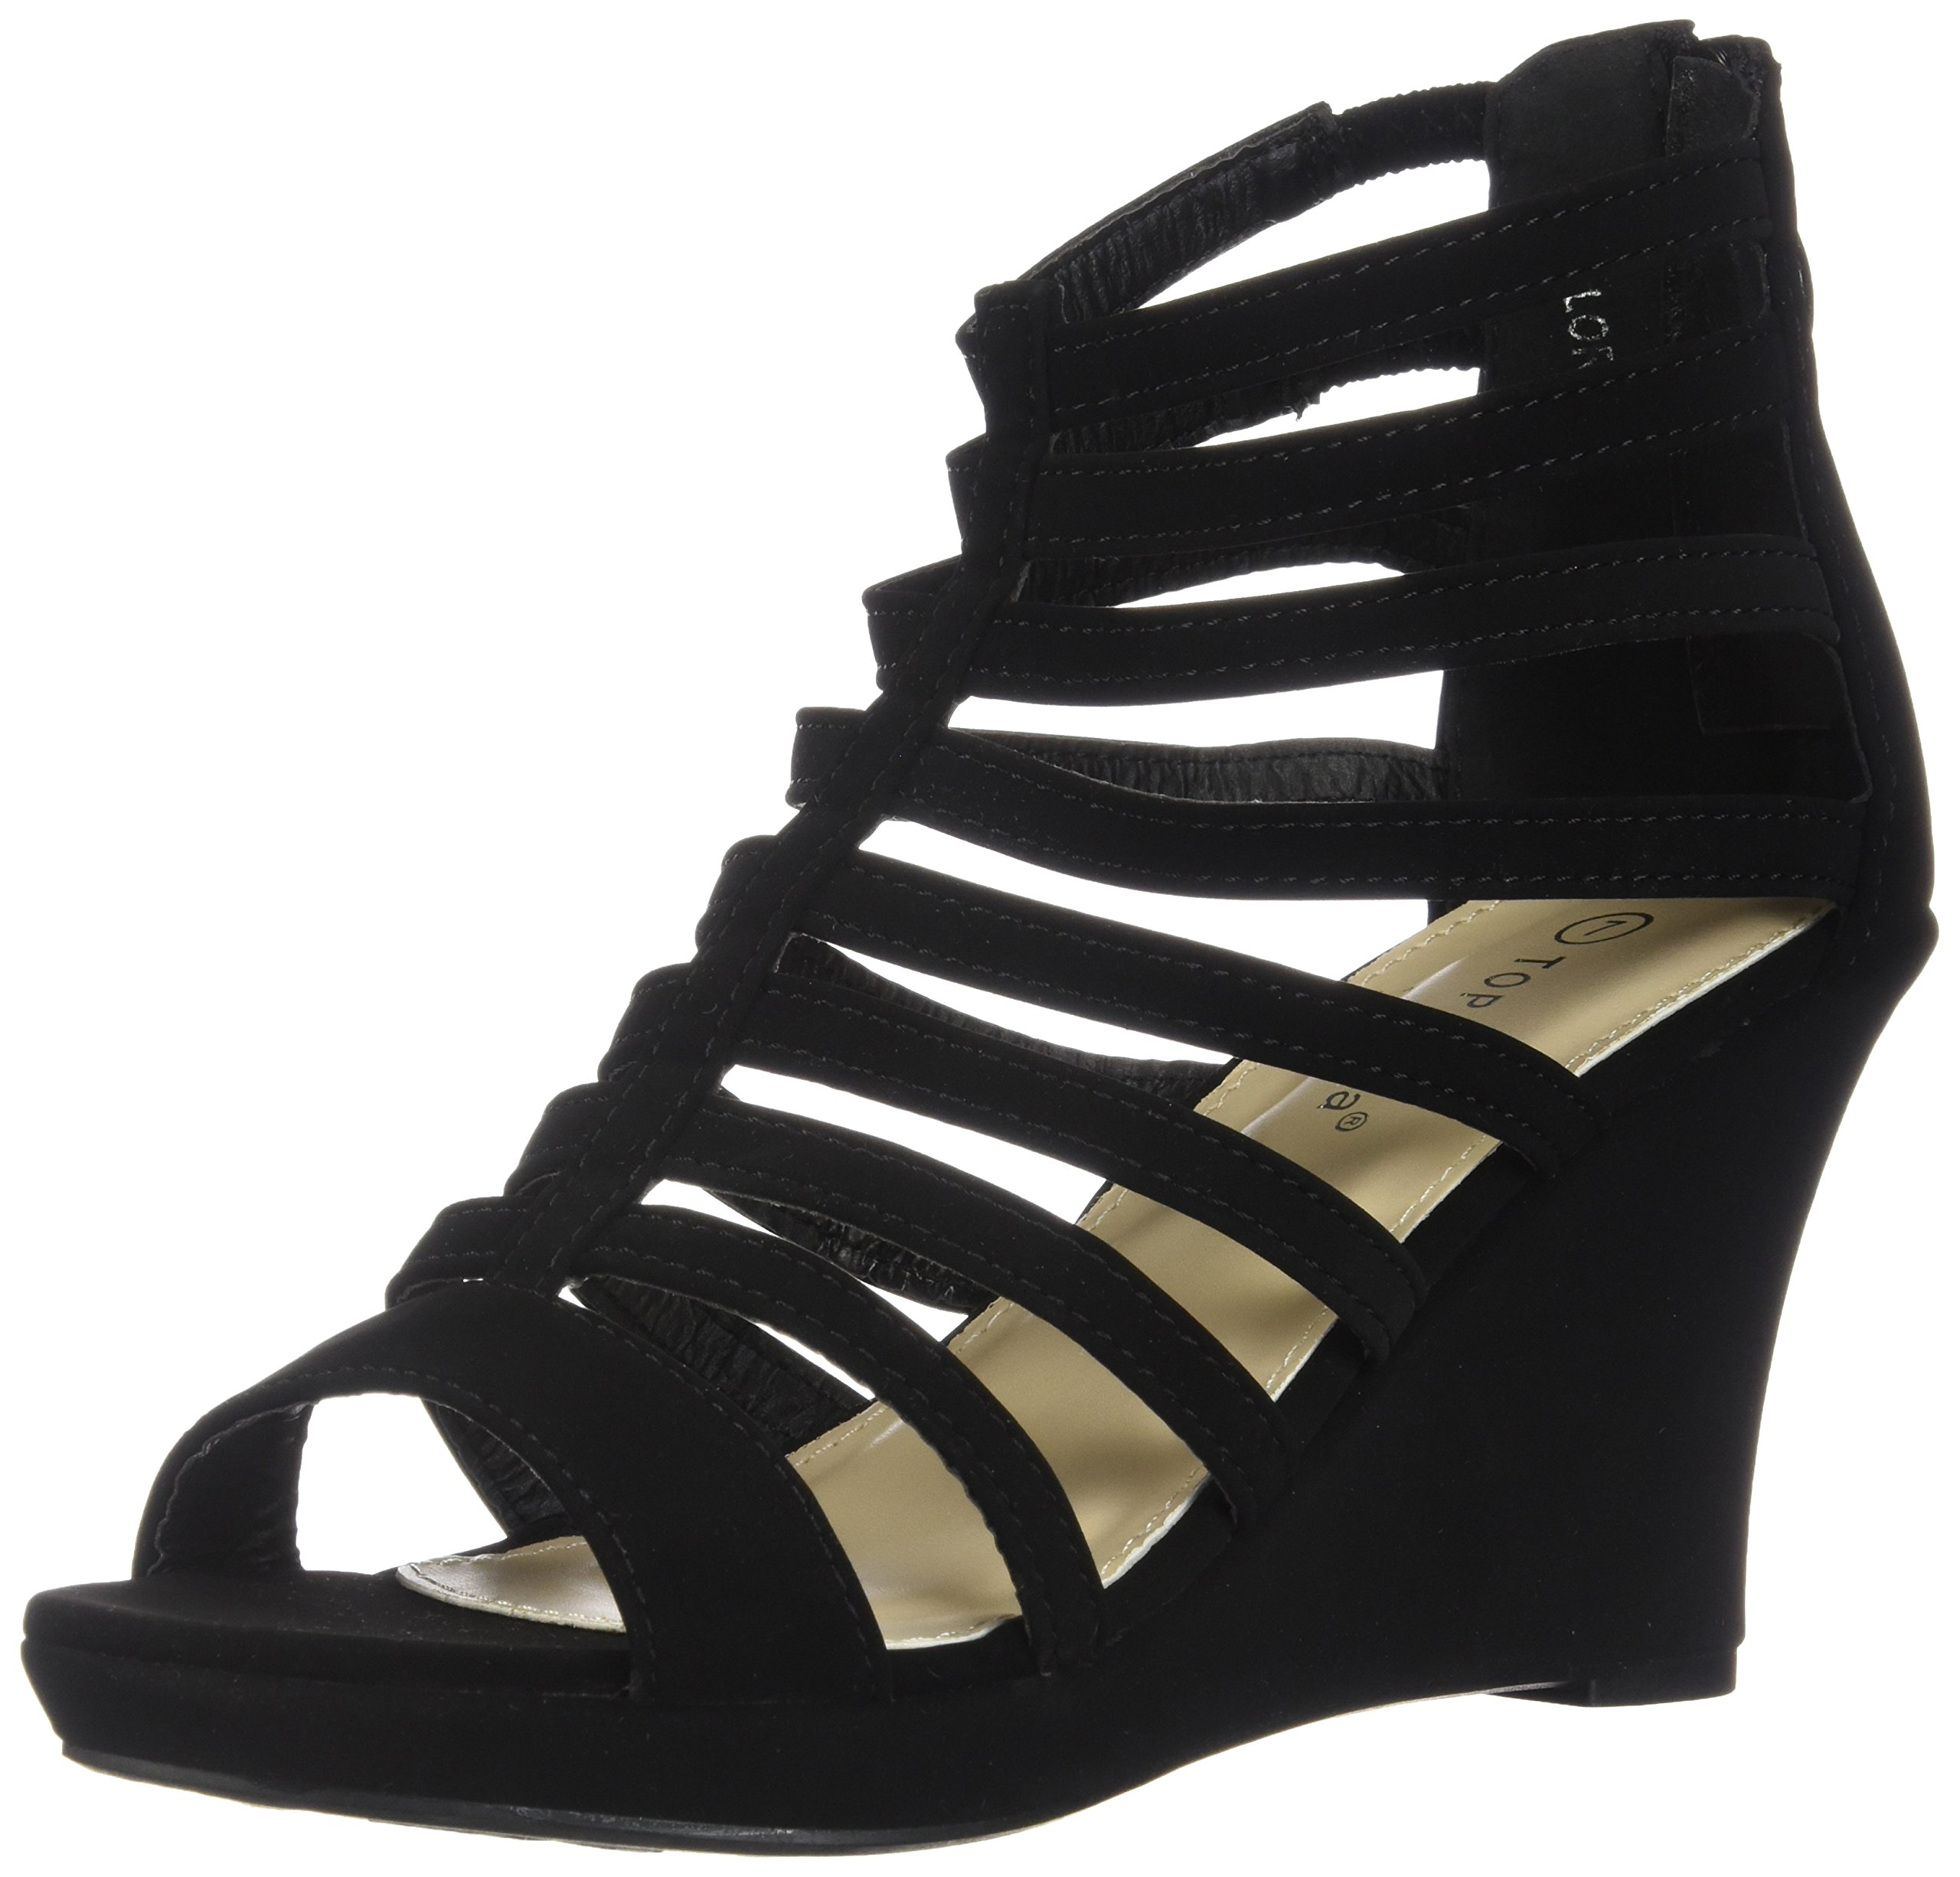 Top Moda Womens Gladiator Inspired Bird Cage Strappy Wedge Sandals Black 6